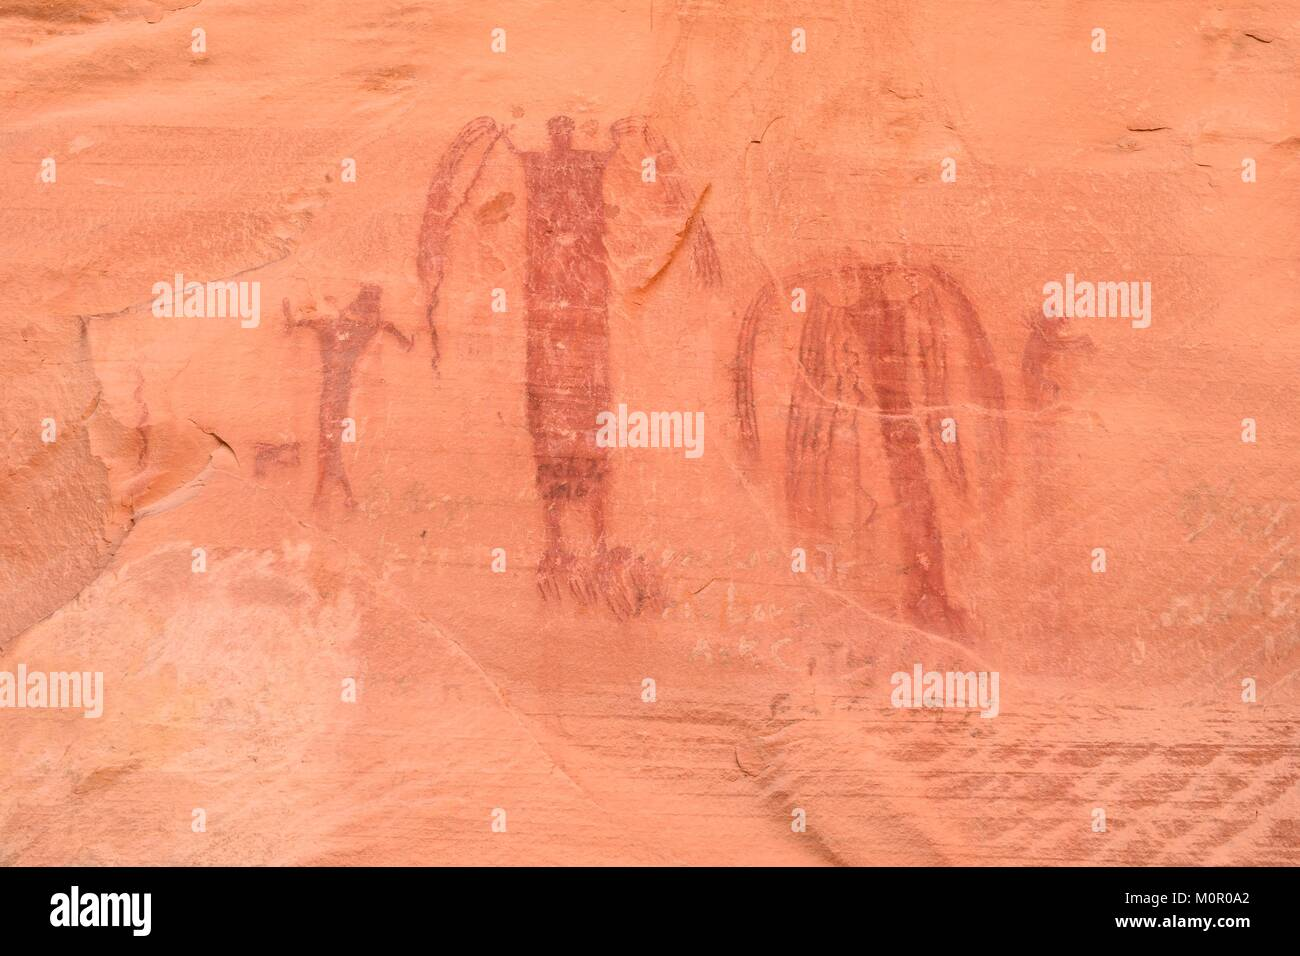 Ancient Fremont Pictograph located in Buckhorn Wash Utah - Stock Image